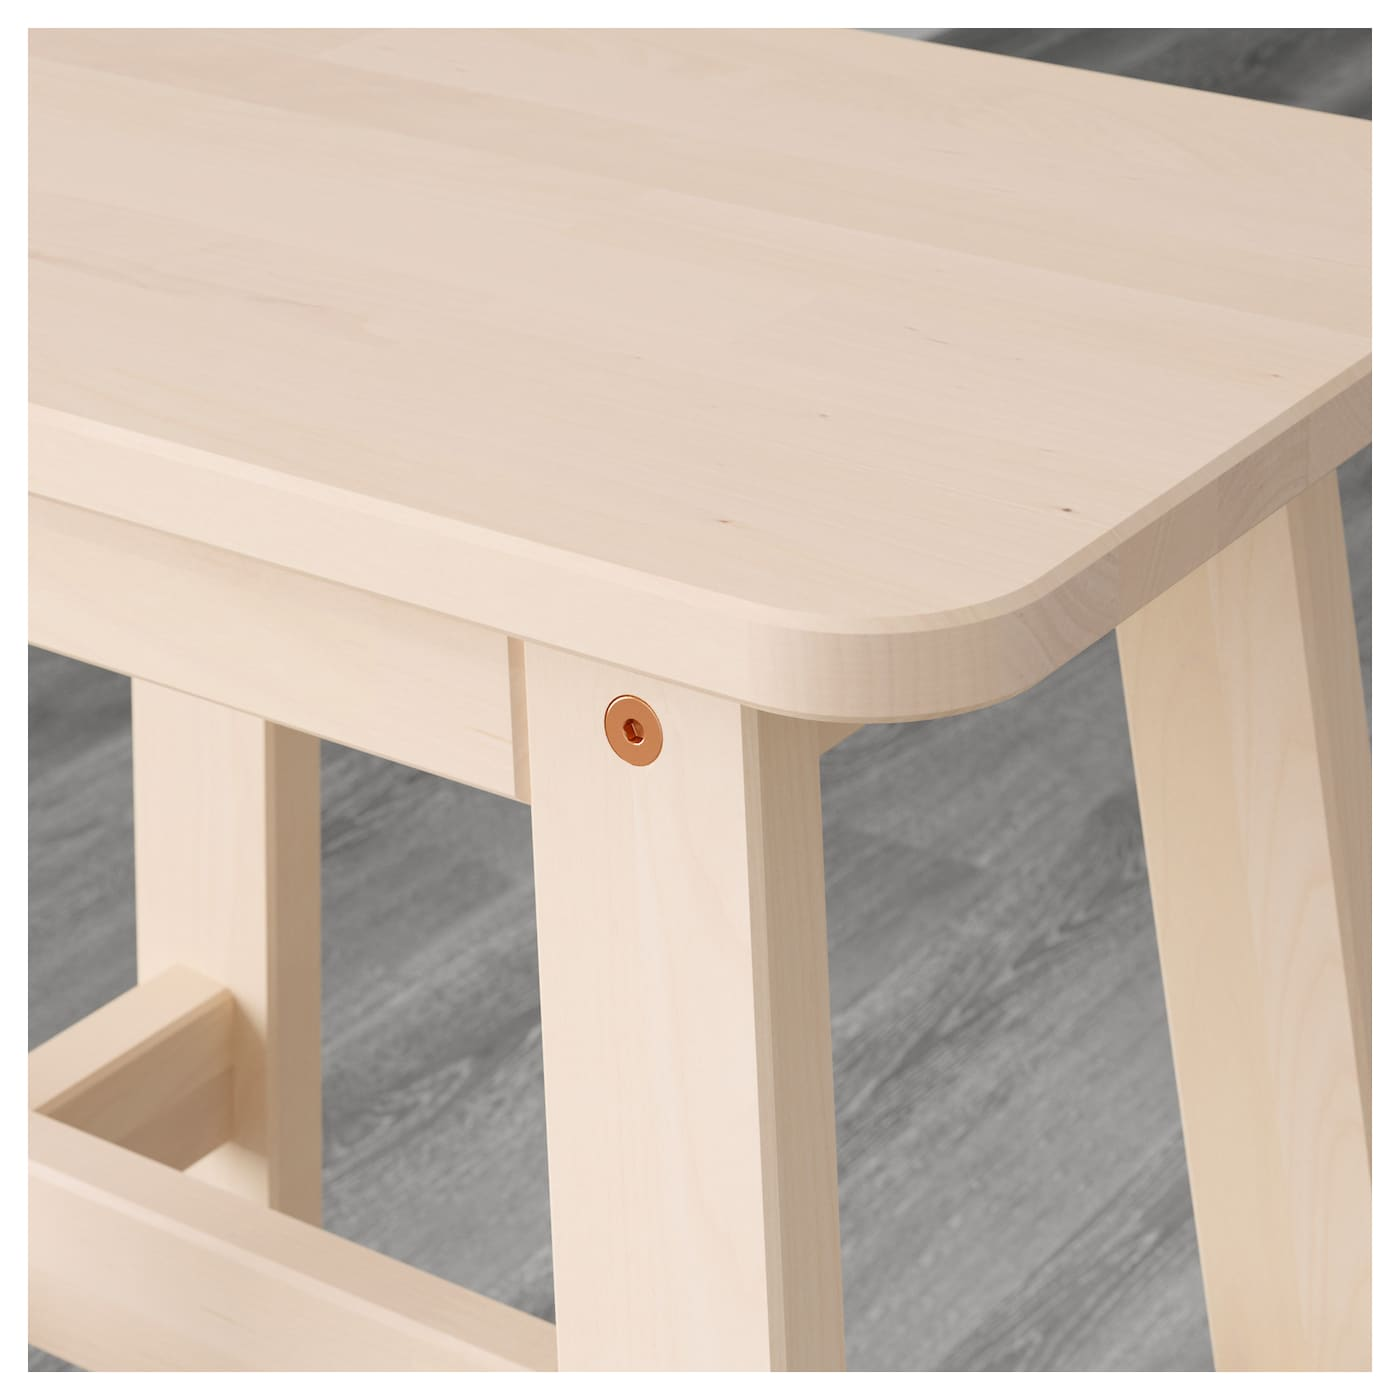 Ikea norråker bench durable and hard wearing meets the requirements on furniture for public